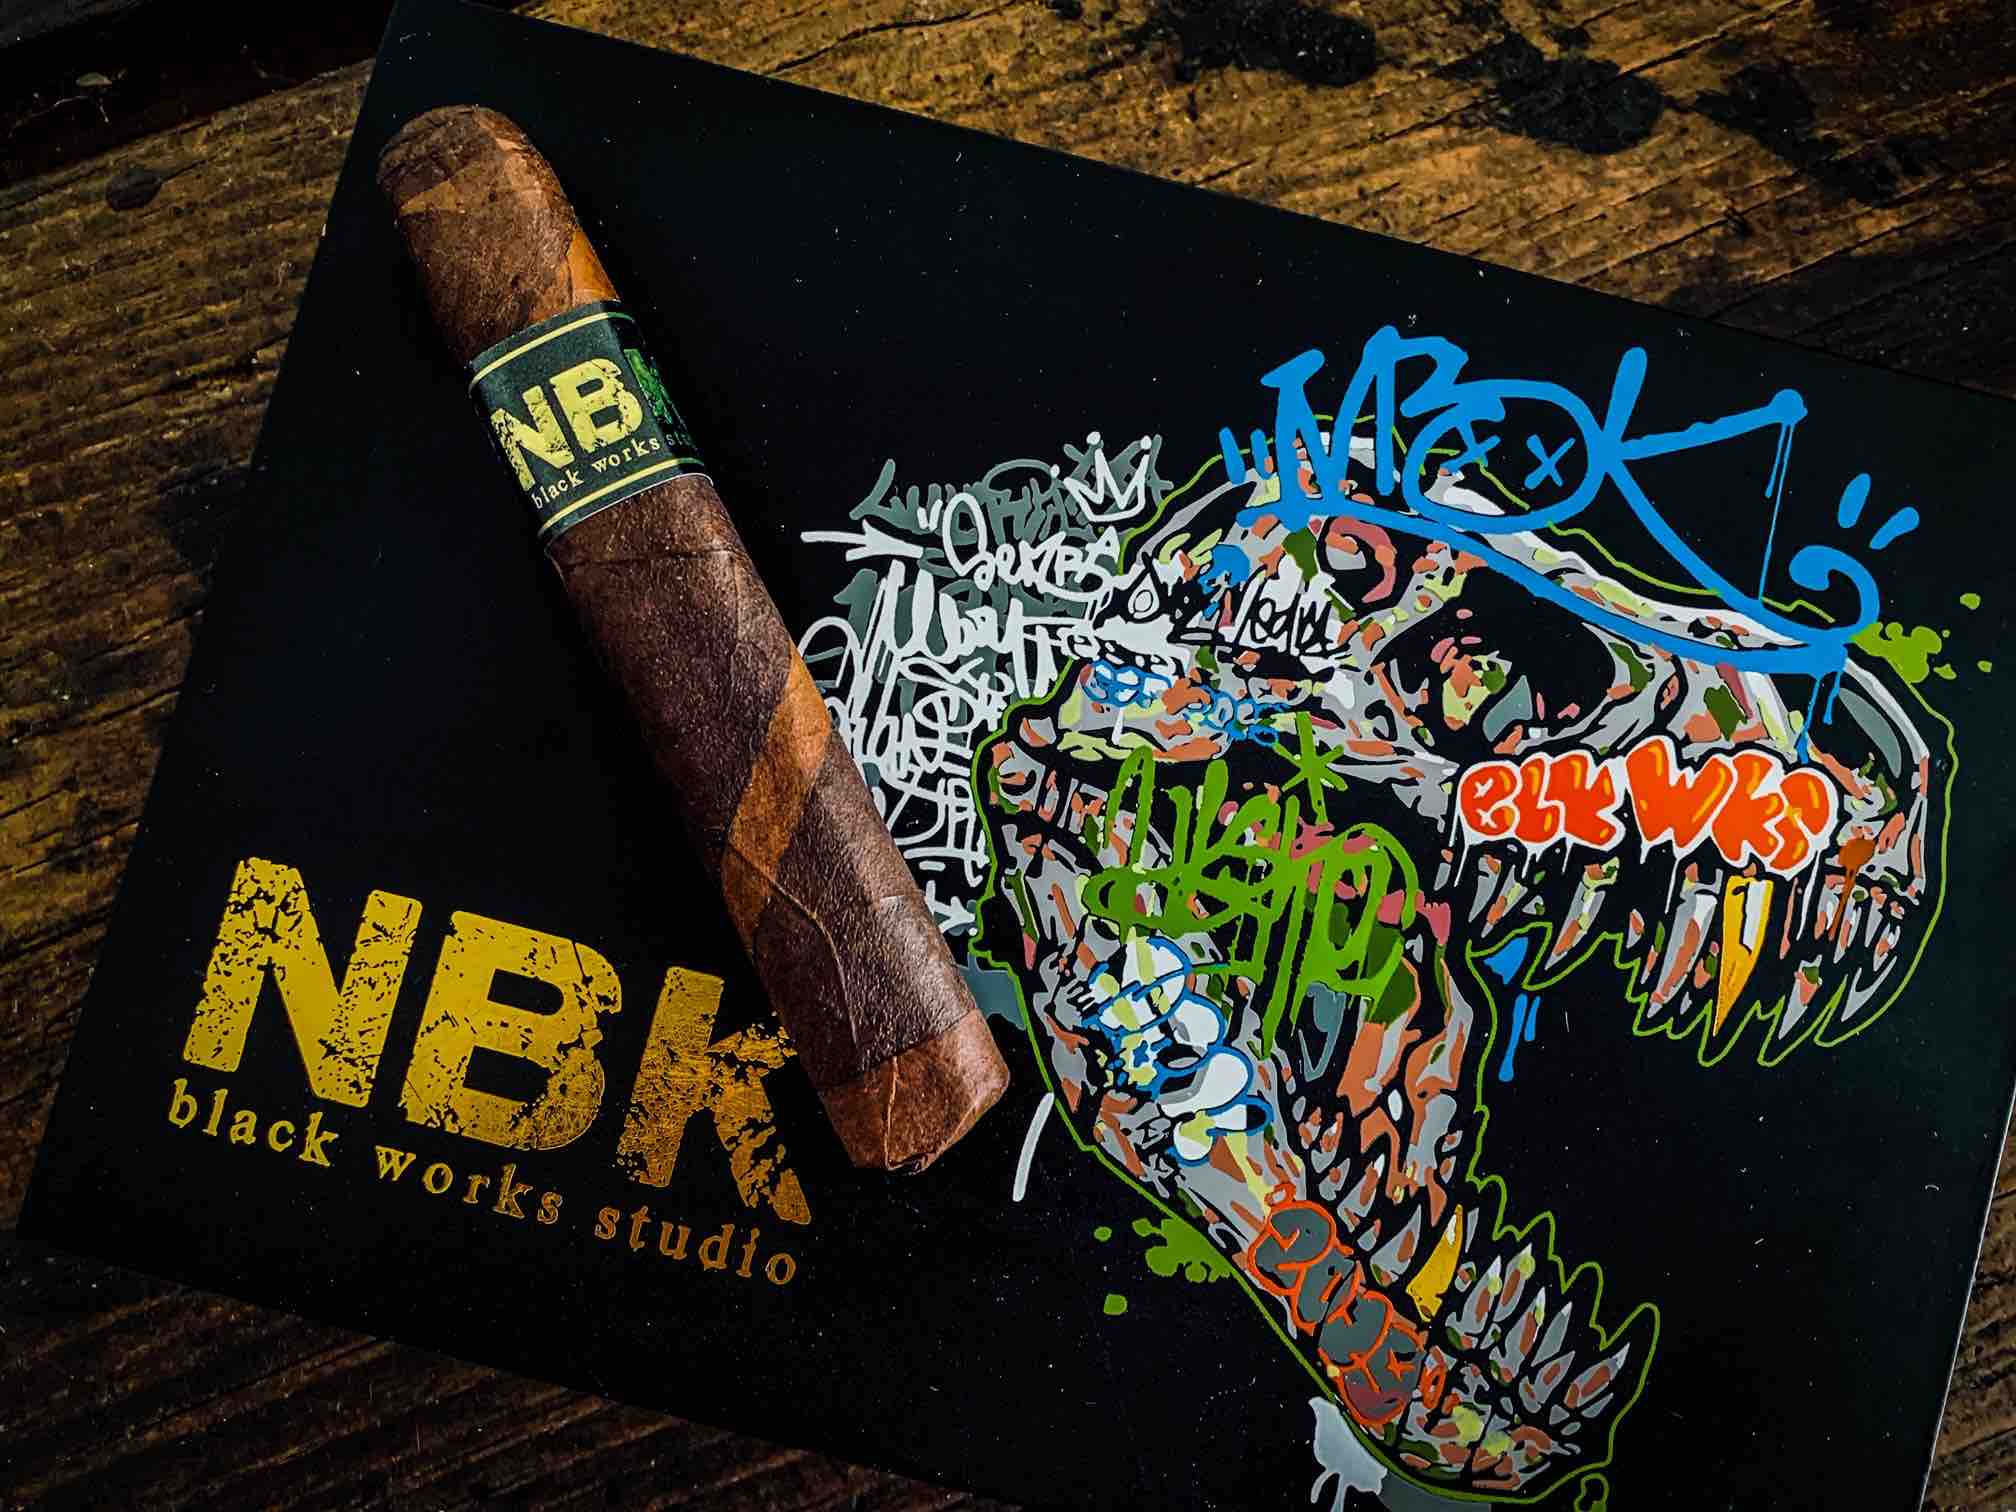 Cigar News: Black Works Studio NBK Lizard King Rolls Out This Month